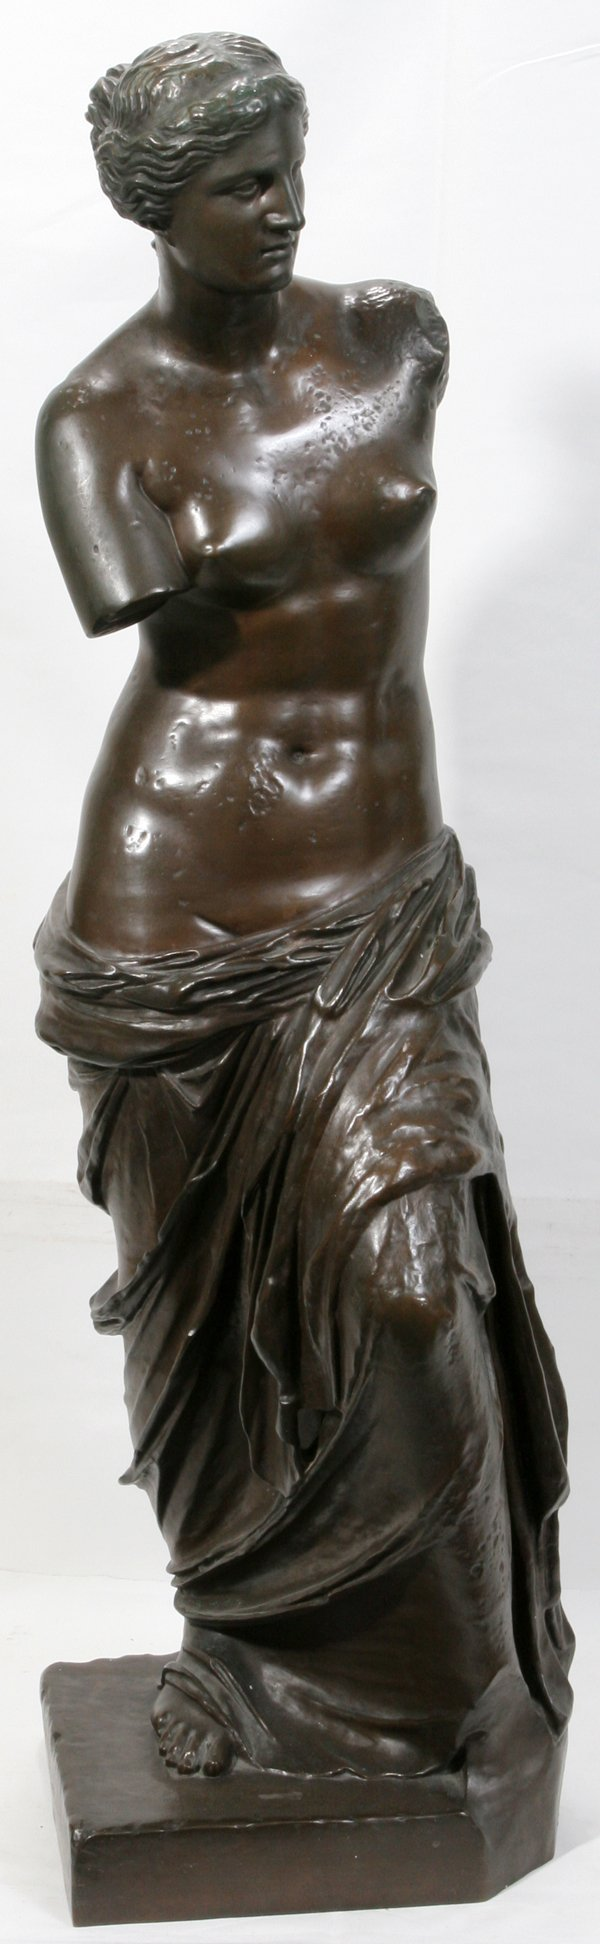 "072022: F. BARBEDIENNE BRONZE SCULPTURE, ""VENUS"""